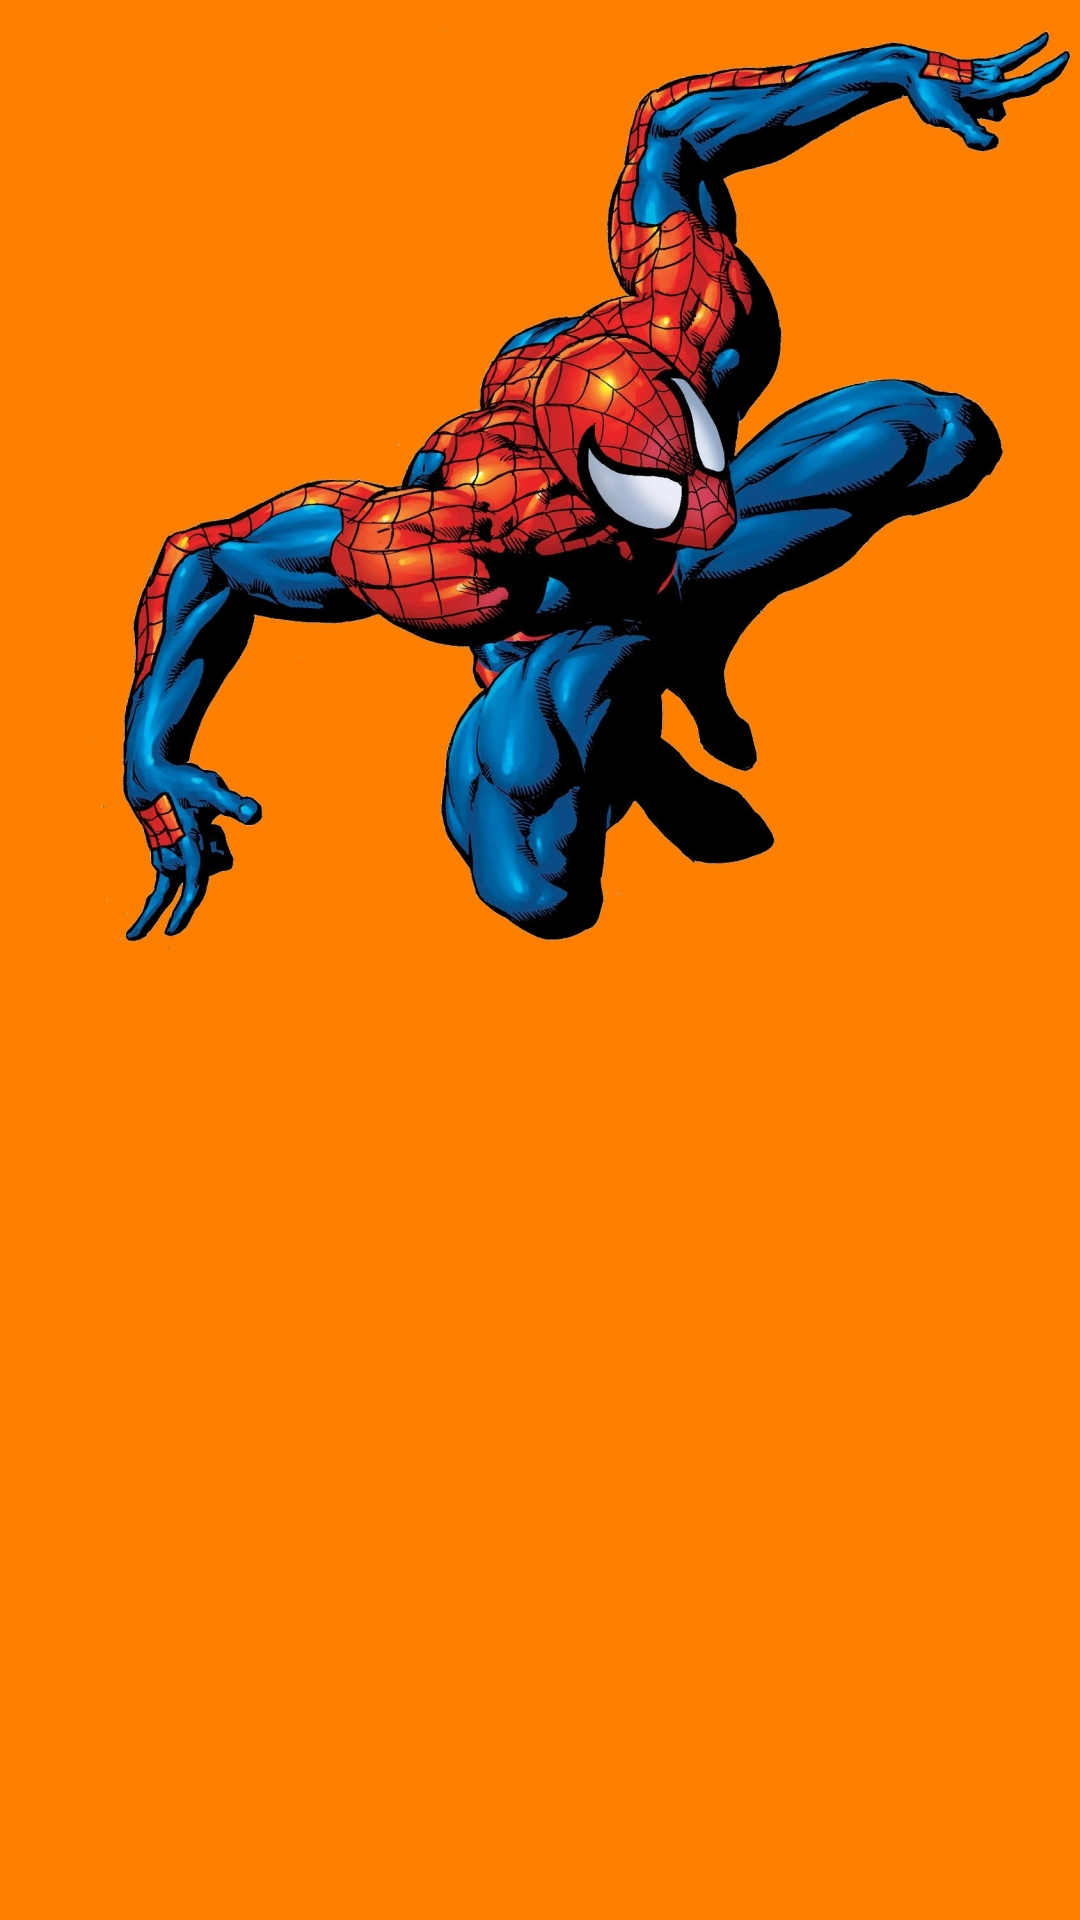 Free Download Spiderman Backgrounds For Iphone Wallpaper Wiki